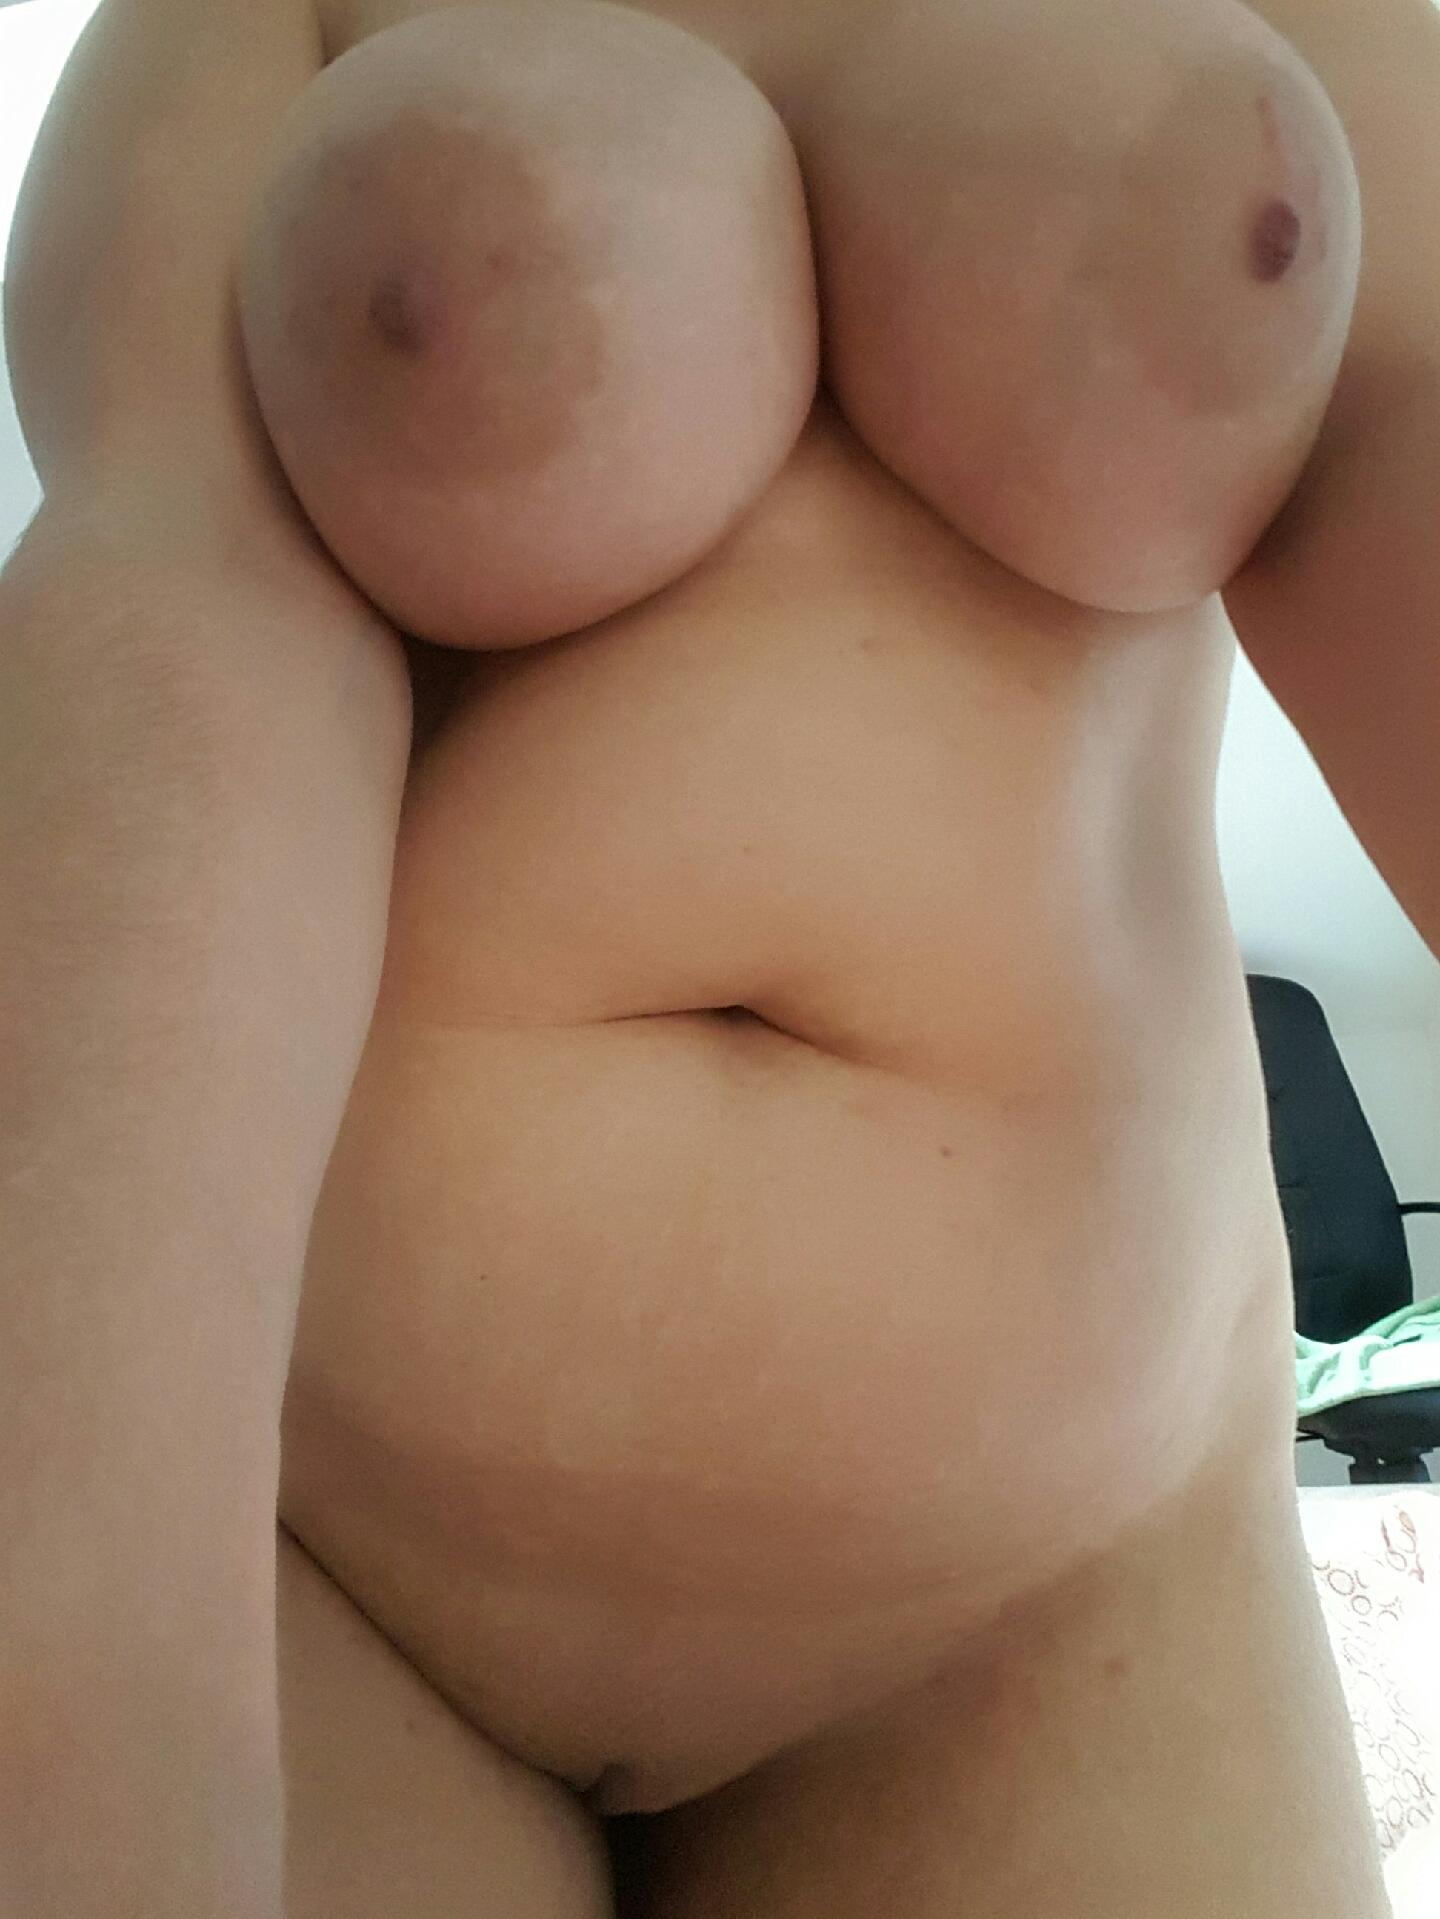 annonce sexe 77 Tube sexe com